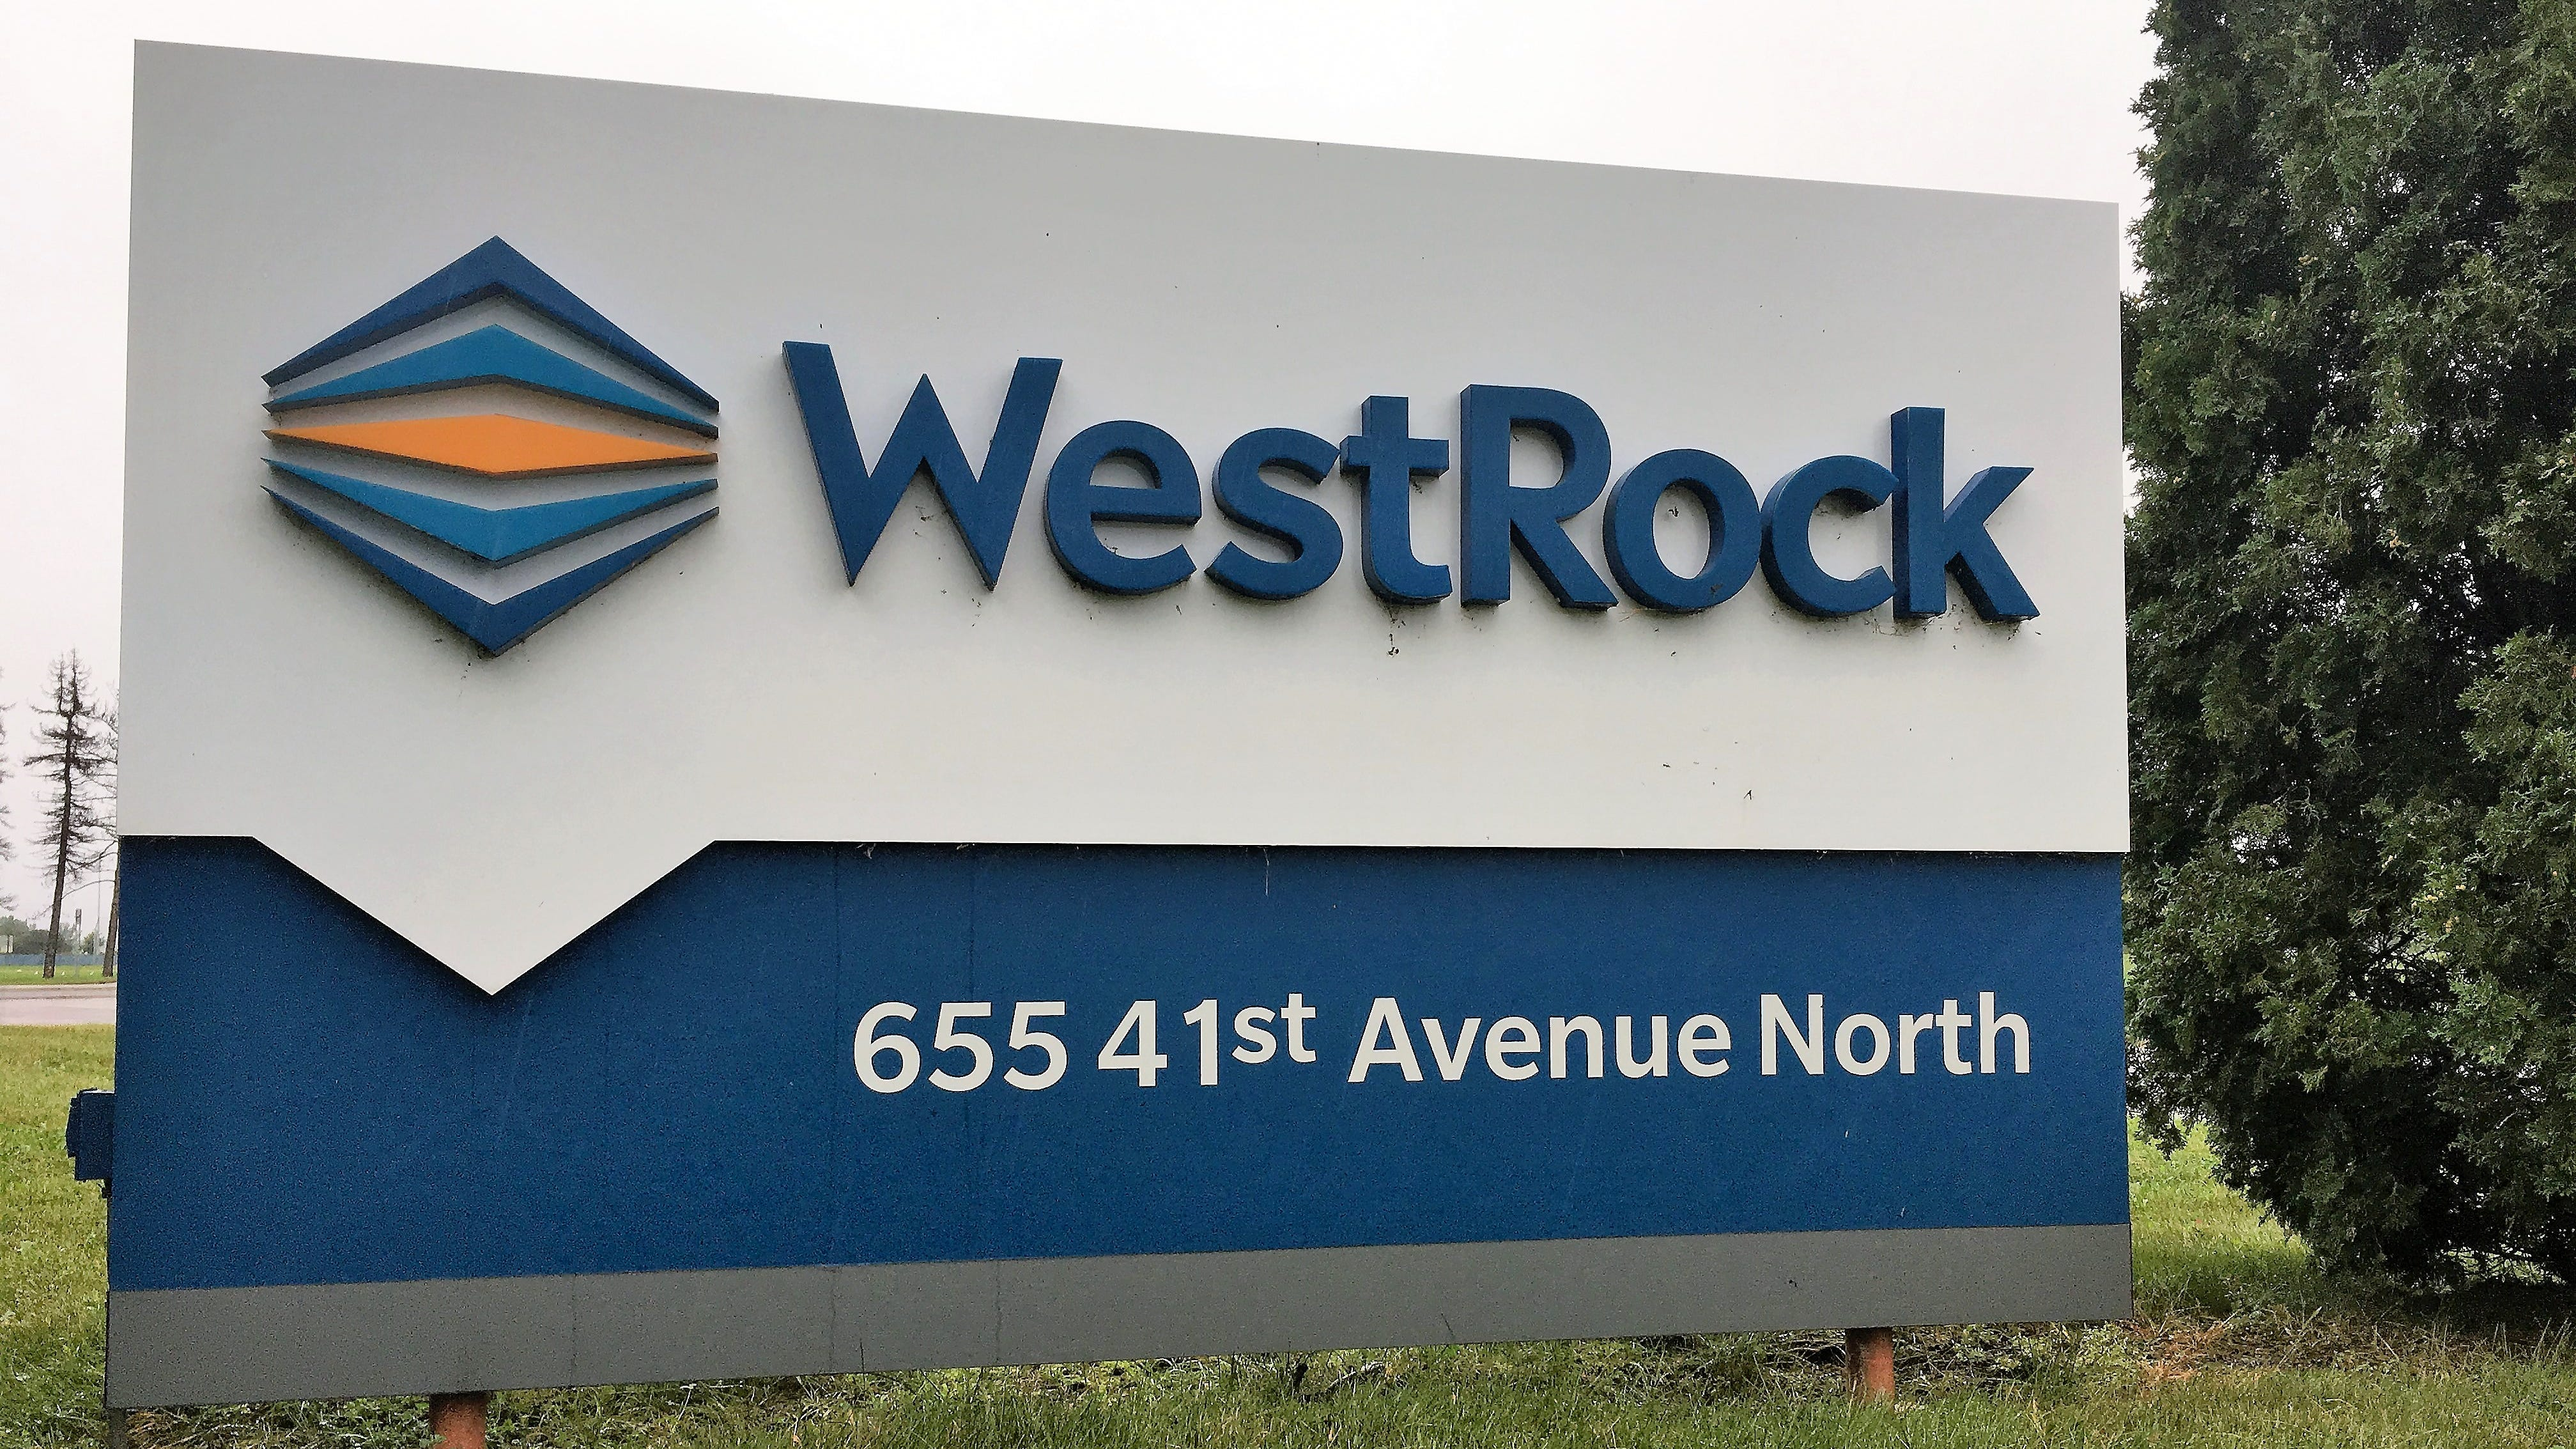 St. Cloud Fire Department responds to fire at WestRock paper packaging plant